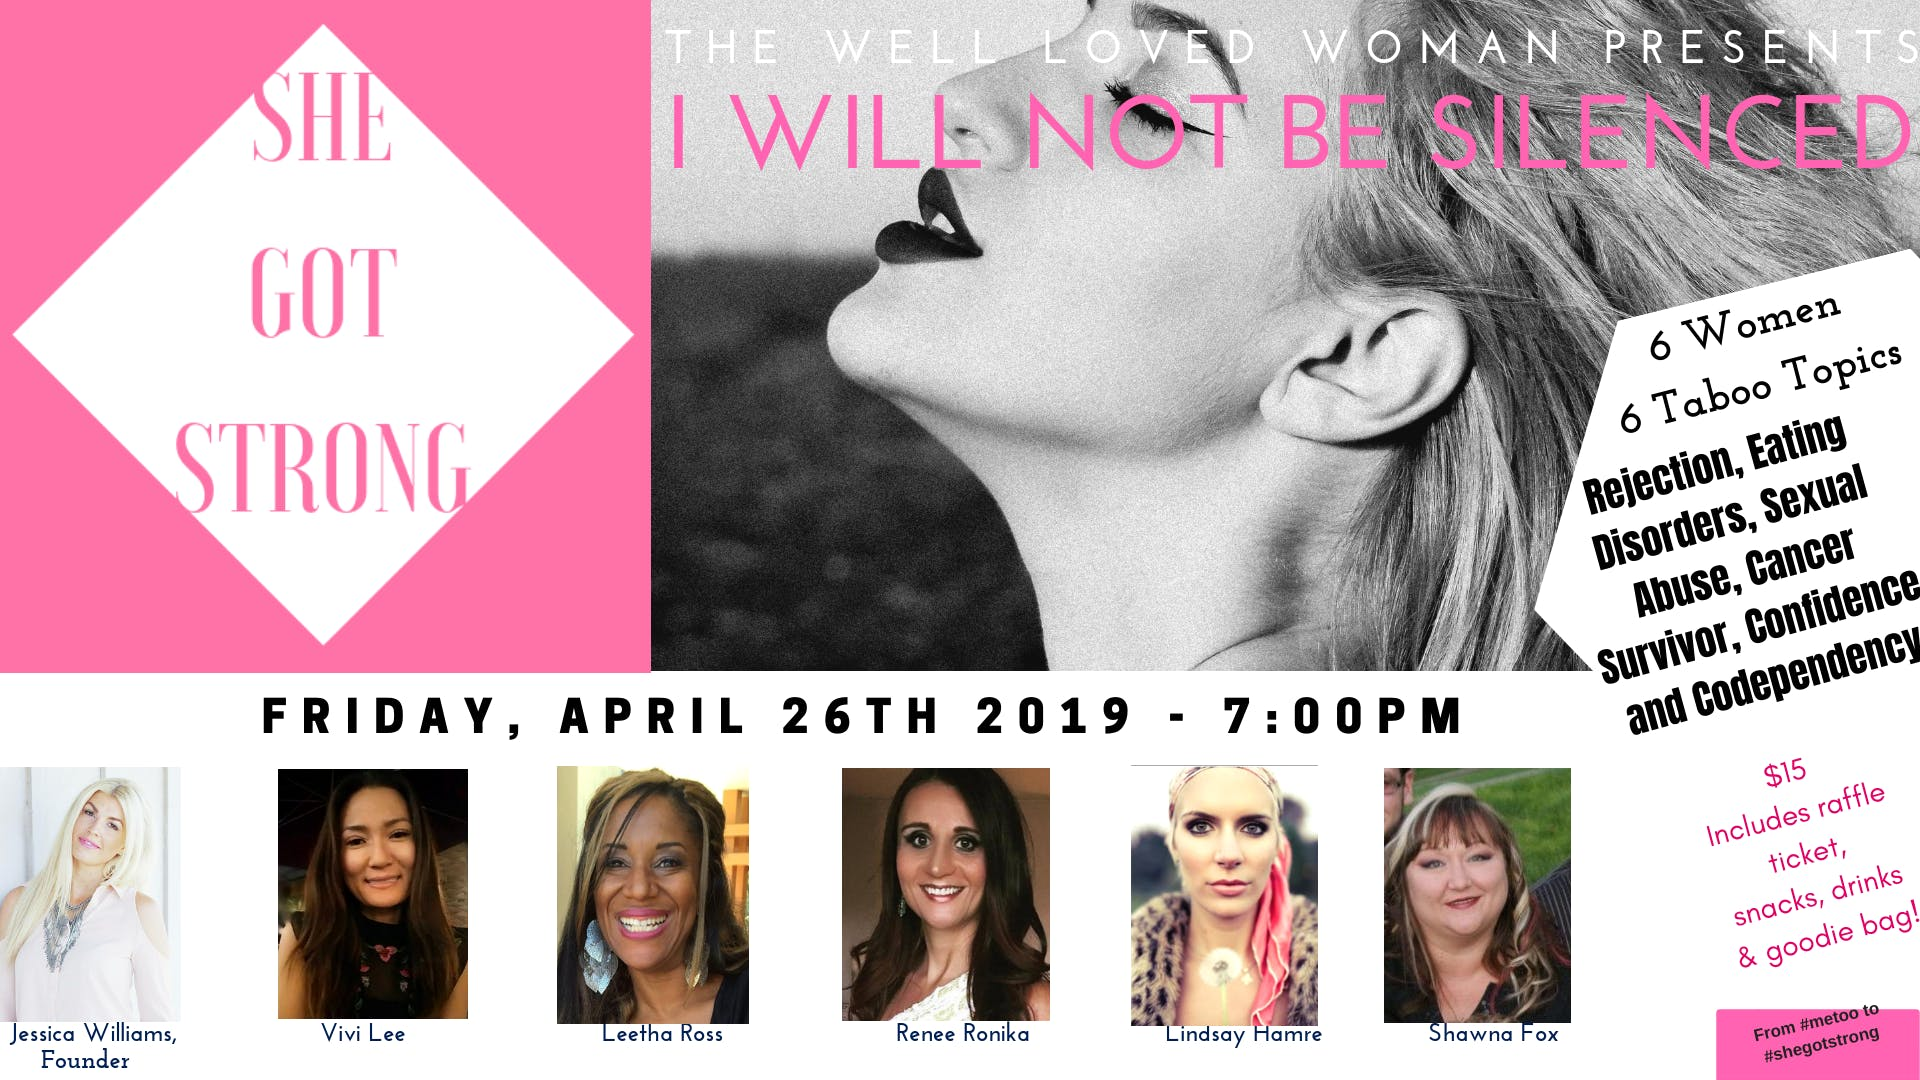 She Got Strong Women's Event: I Will Not Be Silenced